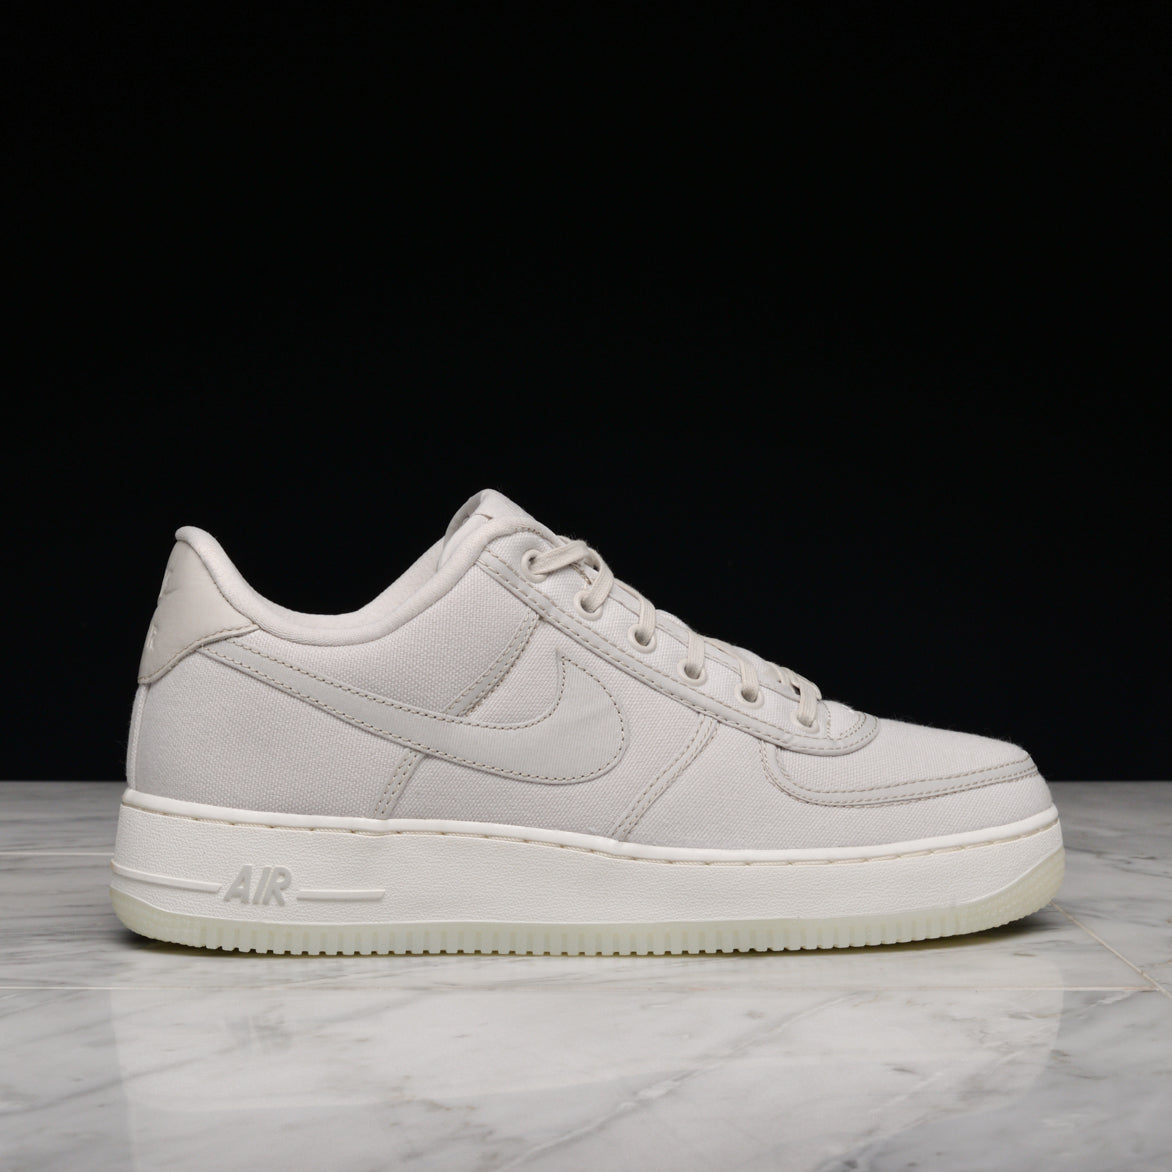 finest selection a0f84 8dcd7 AIR FORCE 1 LOW RETRO QS